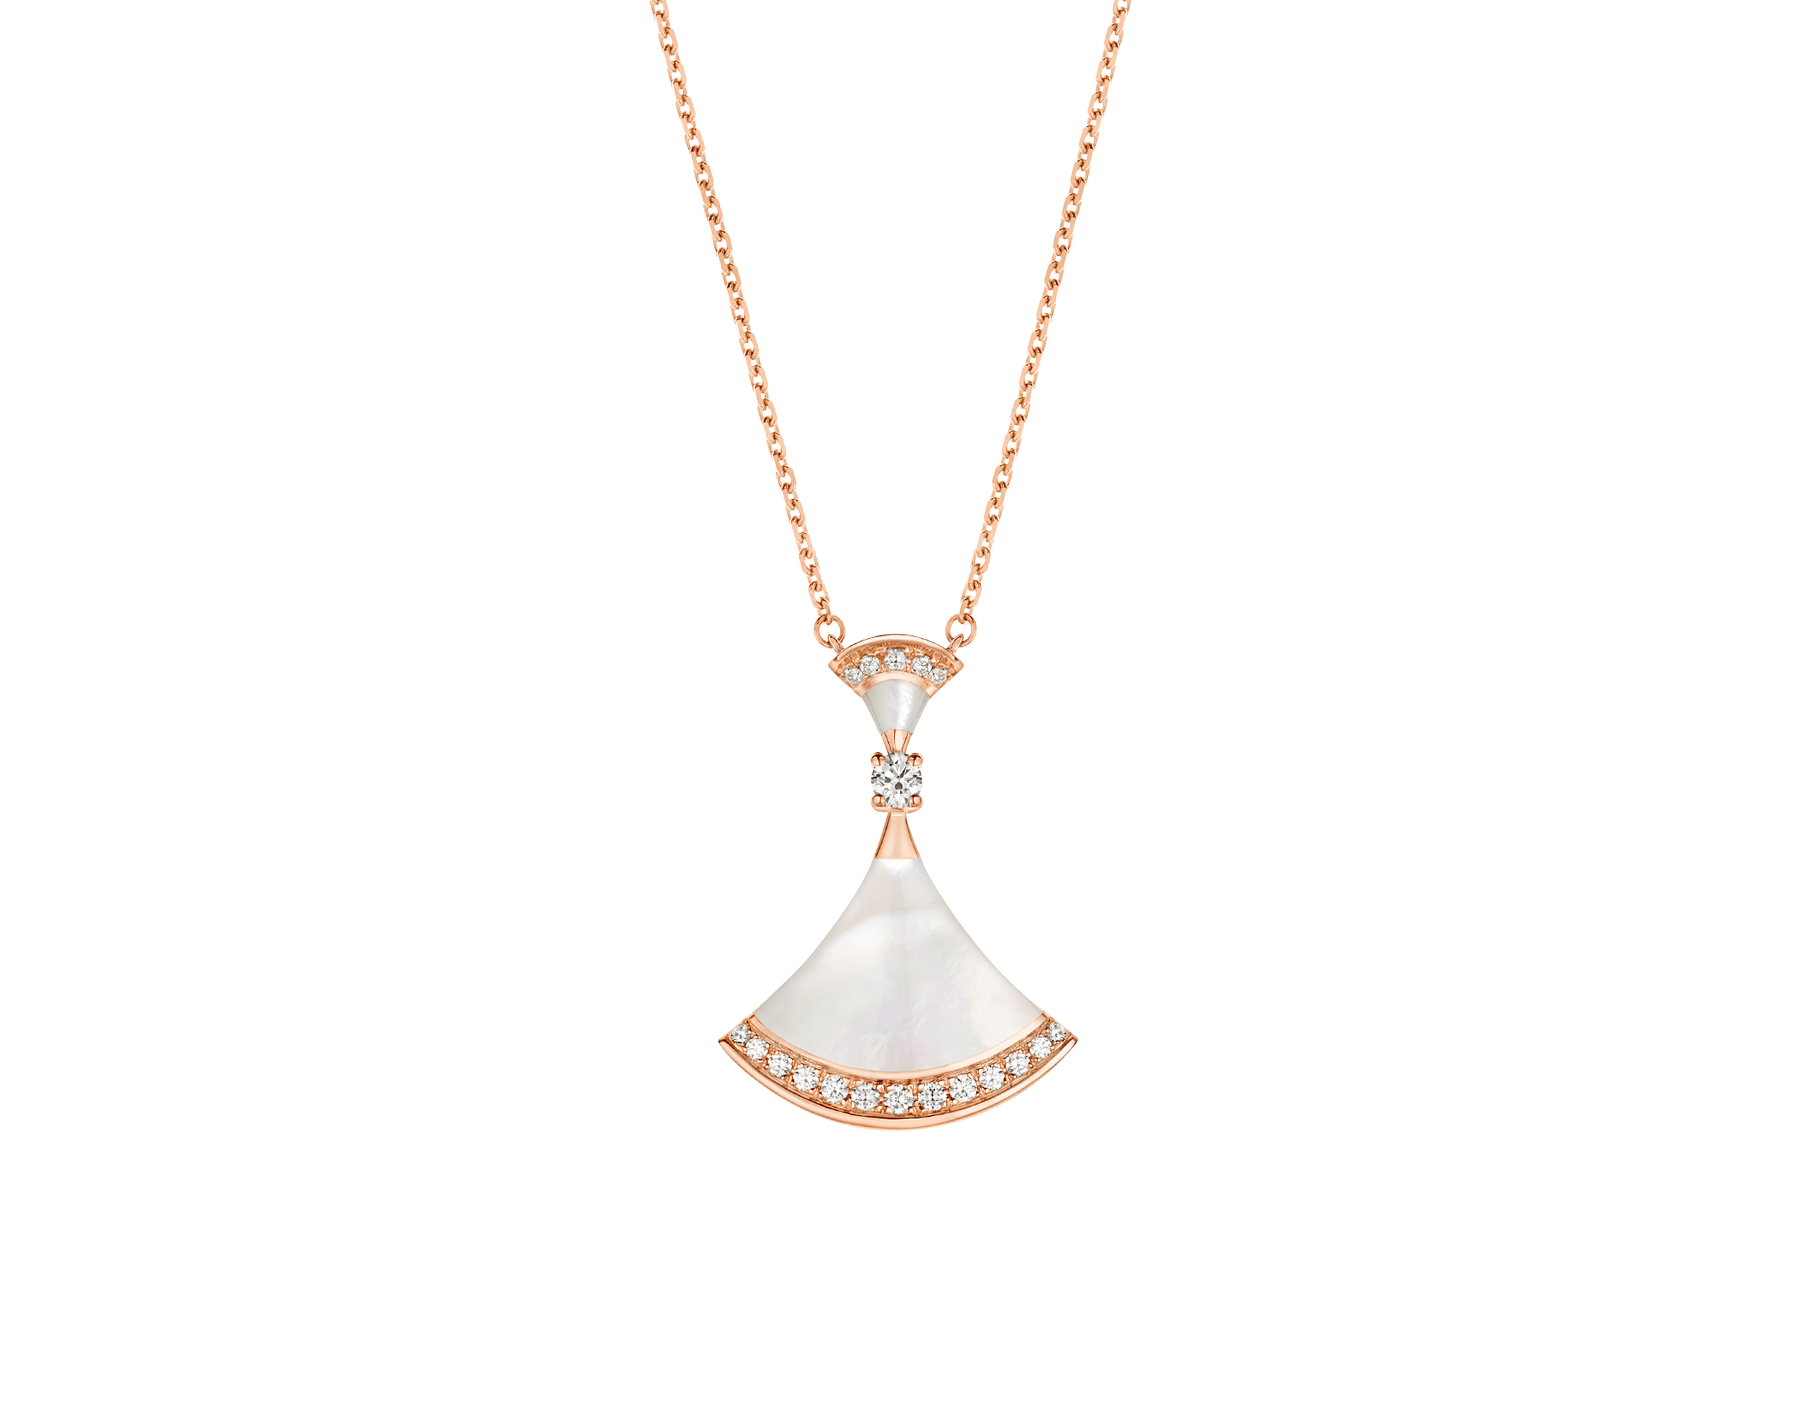 DIVAS' DREAM 18 kt rose gold necklace set with mother-of-pearl elements, a round brilliant-cut diamond and pavé diamonds (0.28 ct) 356452 image 1